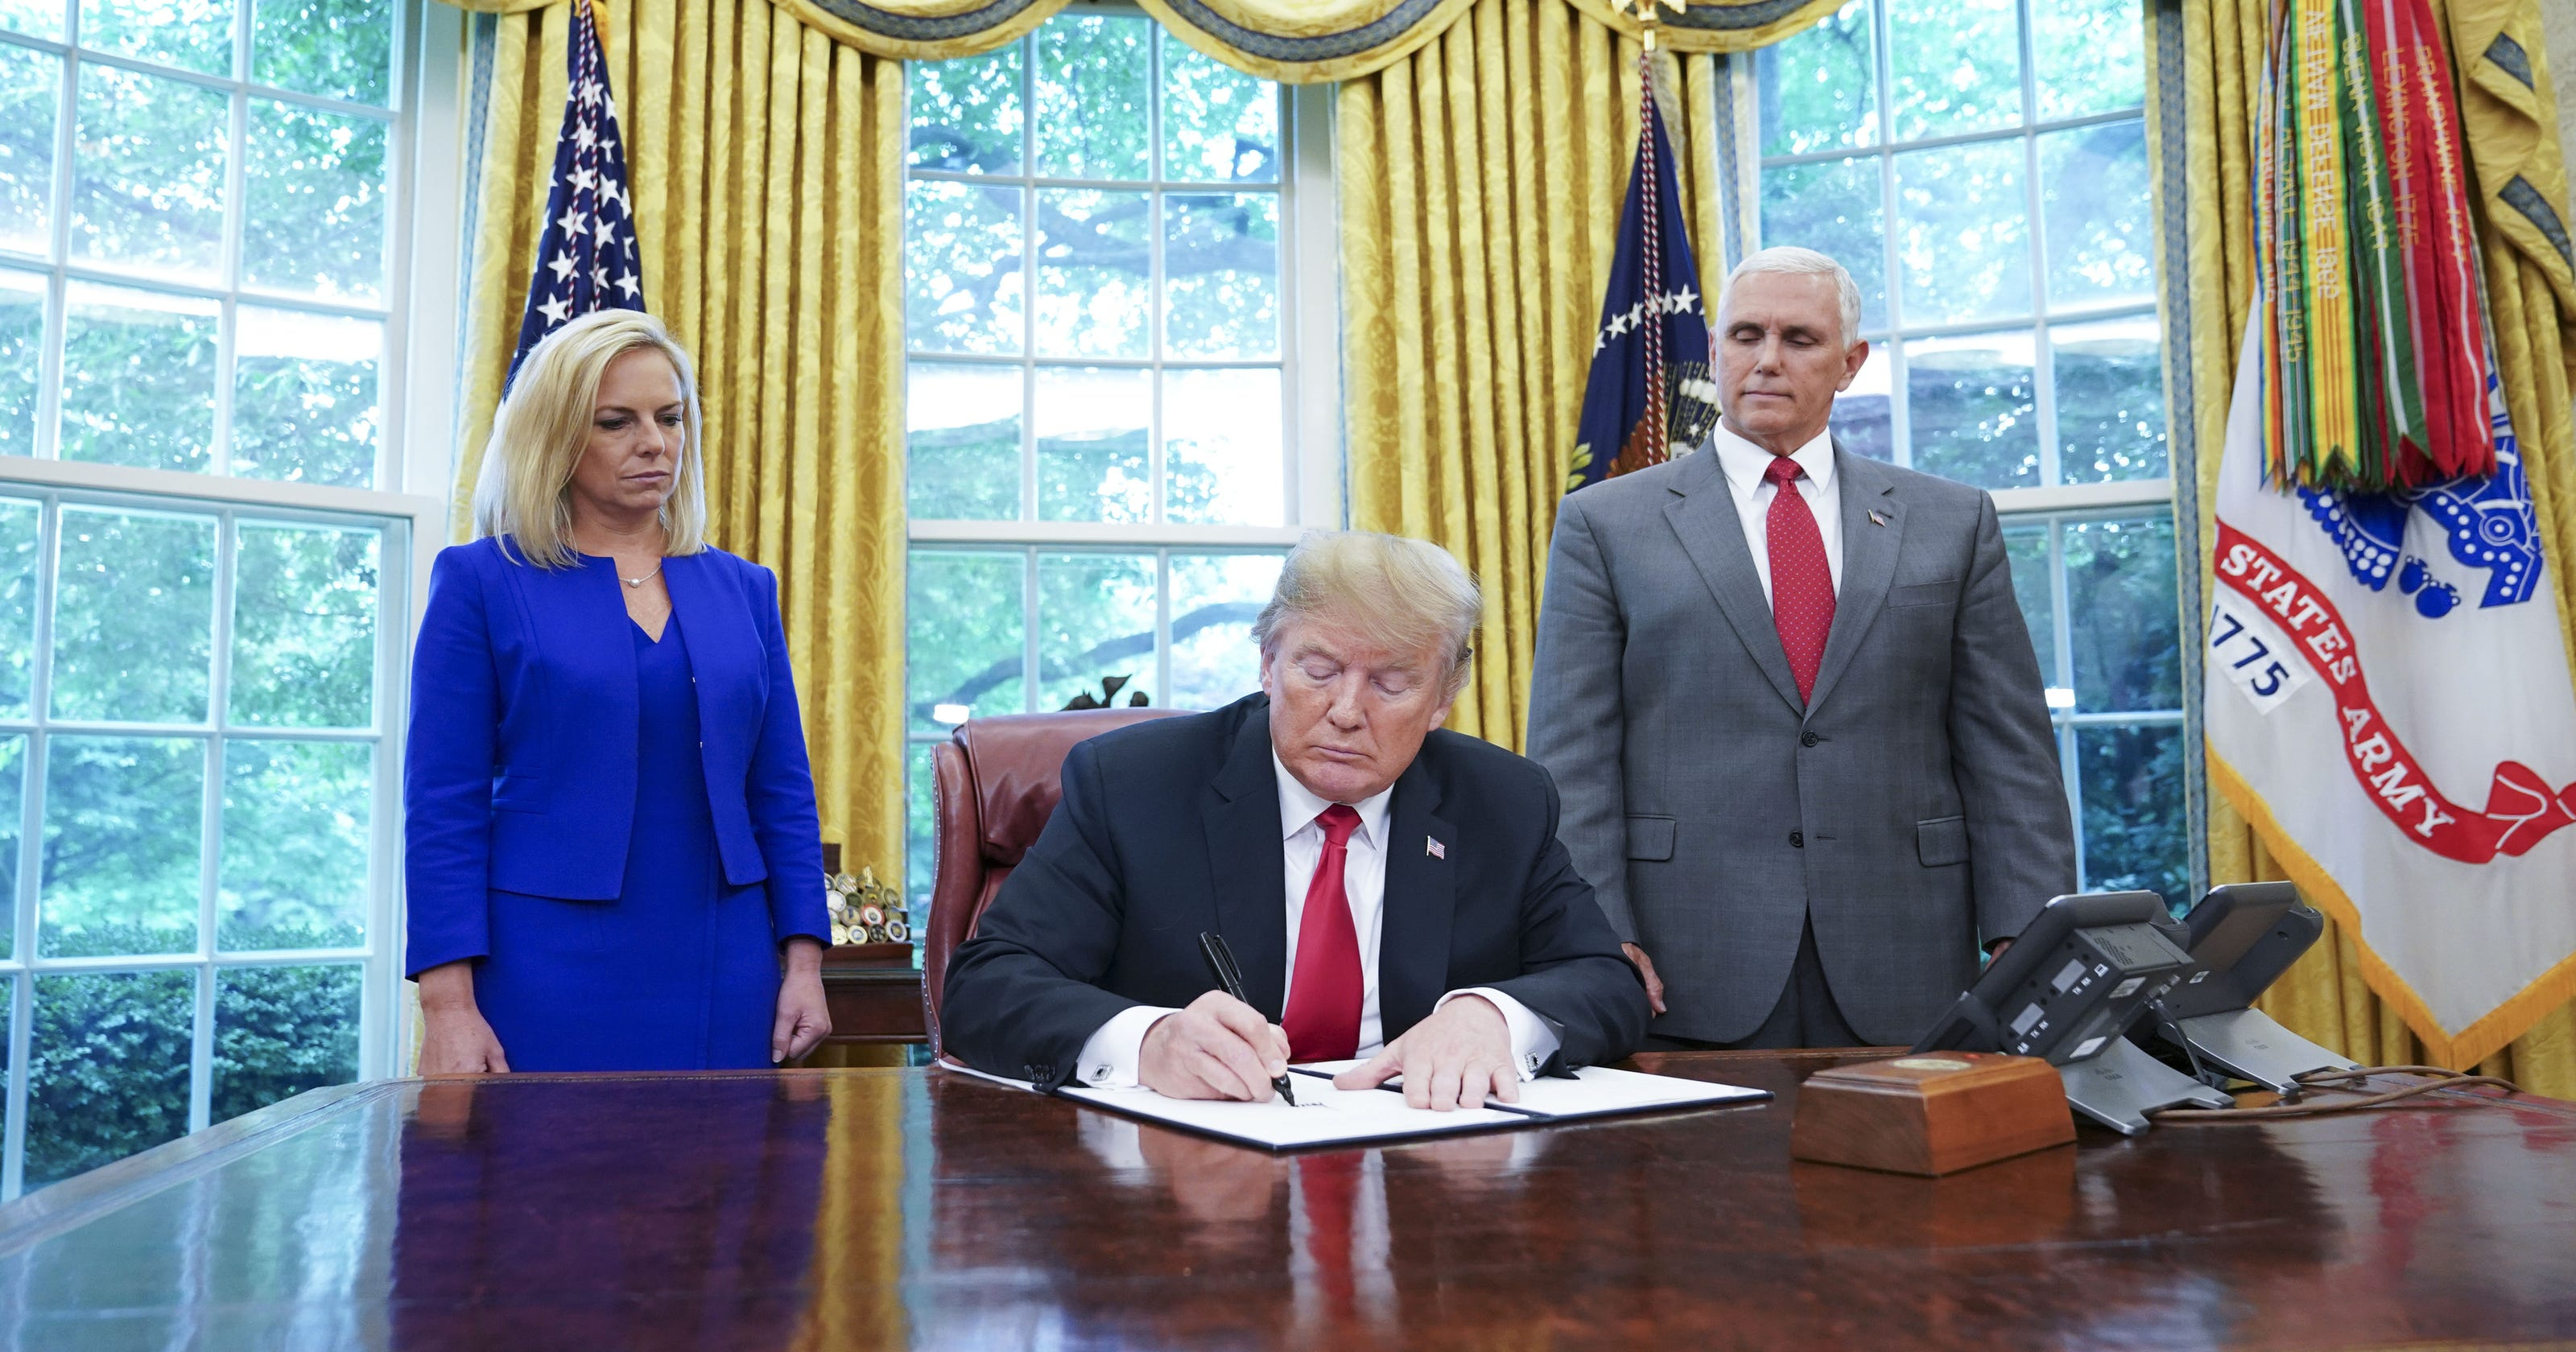 Family separation: Trump signs executive order to keep